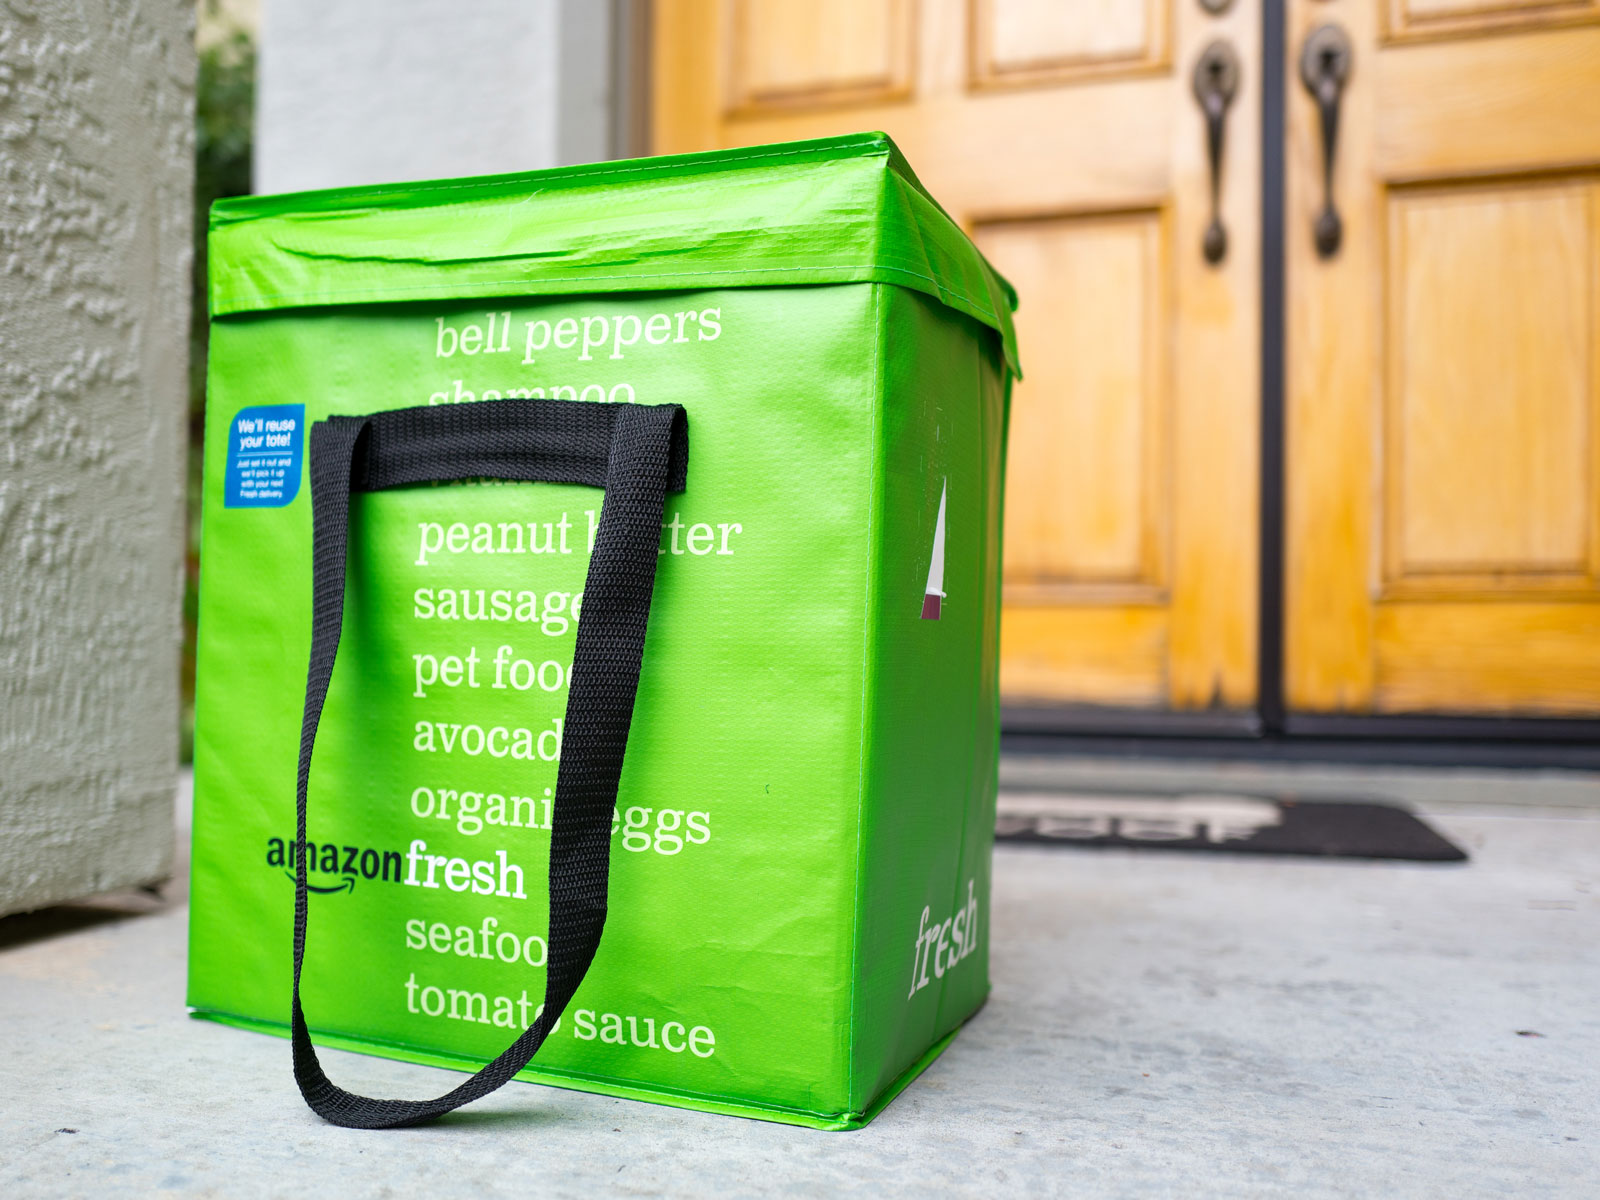 amazon-fresh-free-prime-FT-BLOG1019.jpg